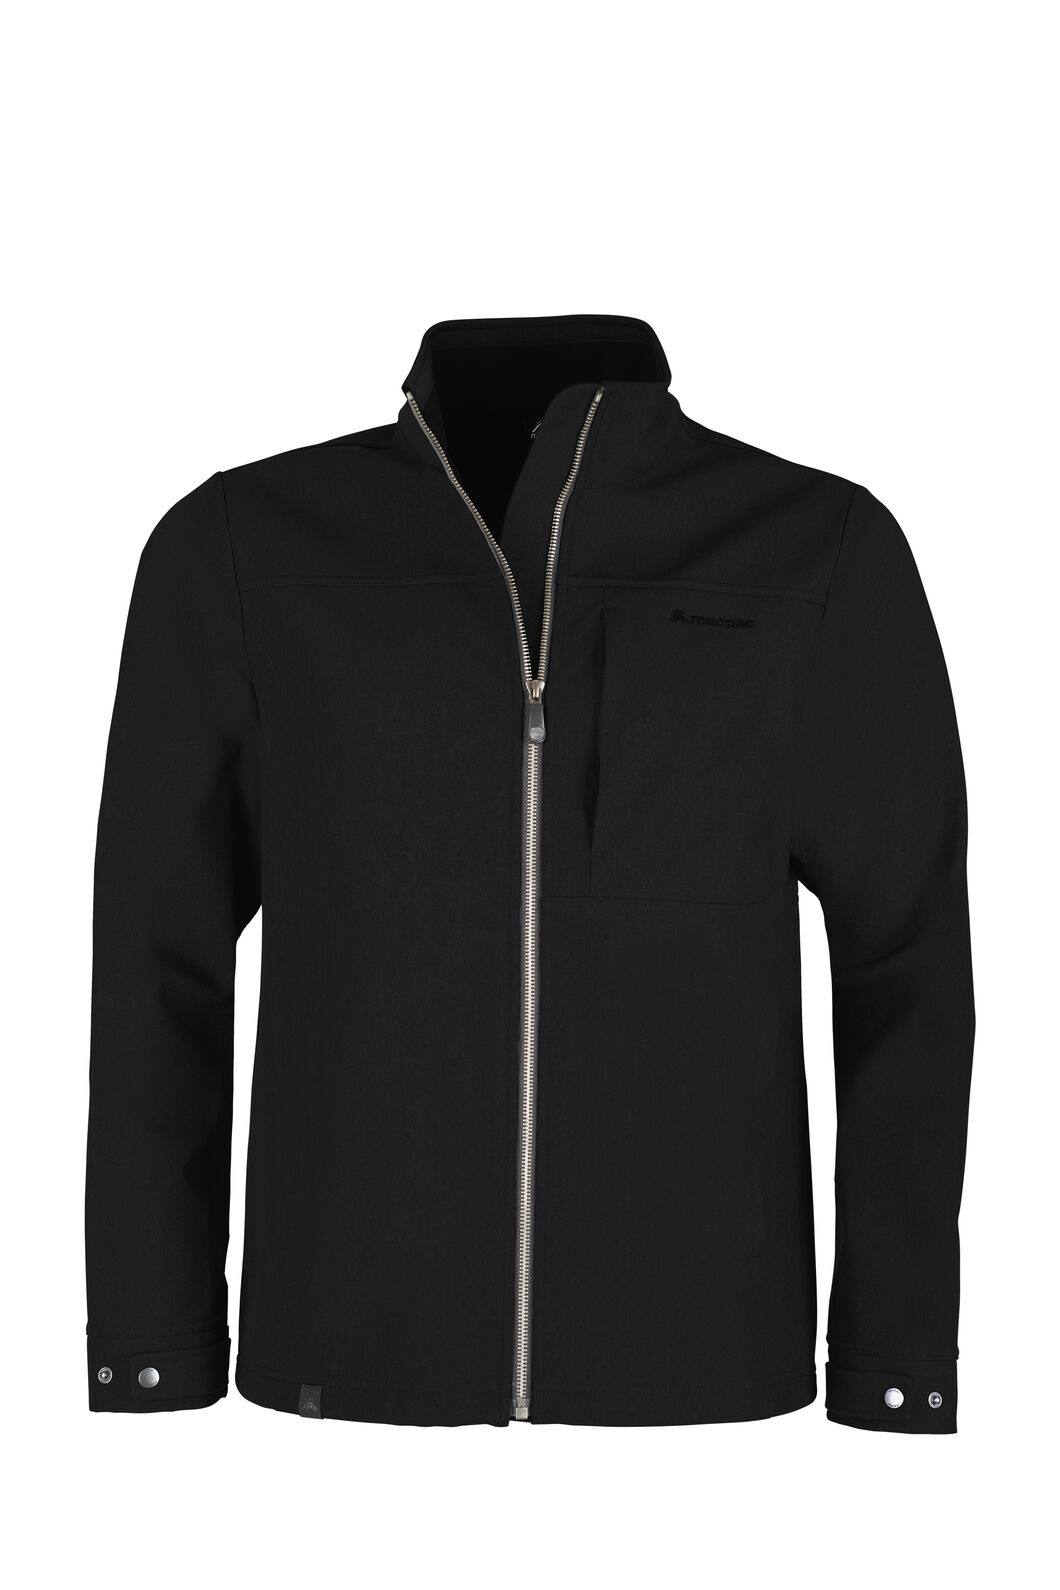 Macpac Chord Softshell Jacket - Men's, Black, hi-res